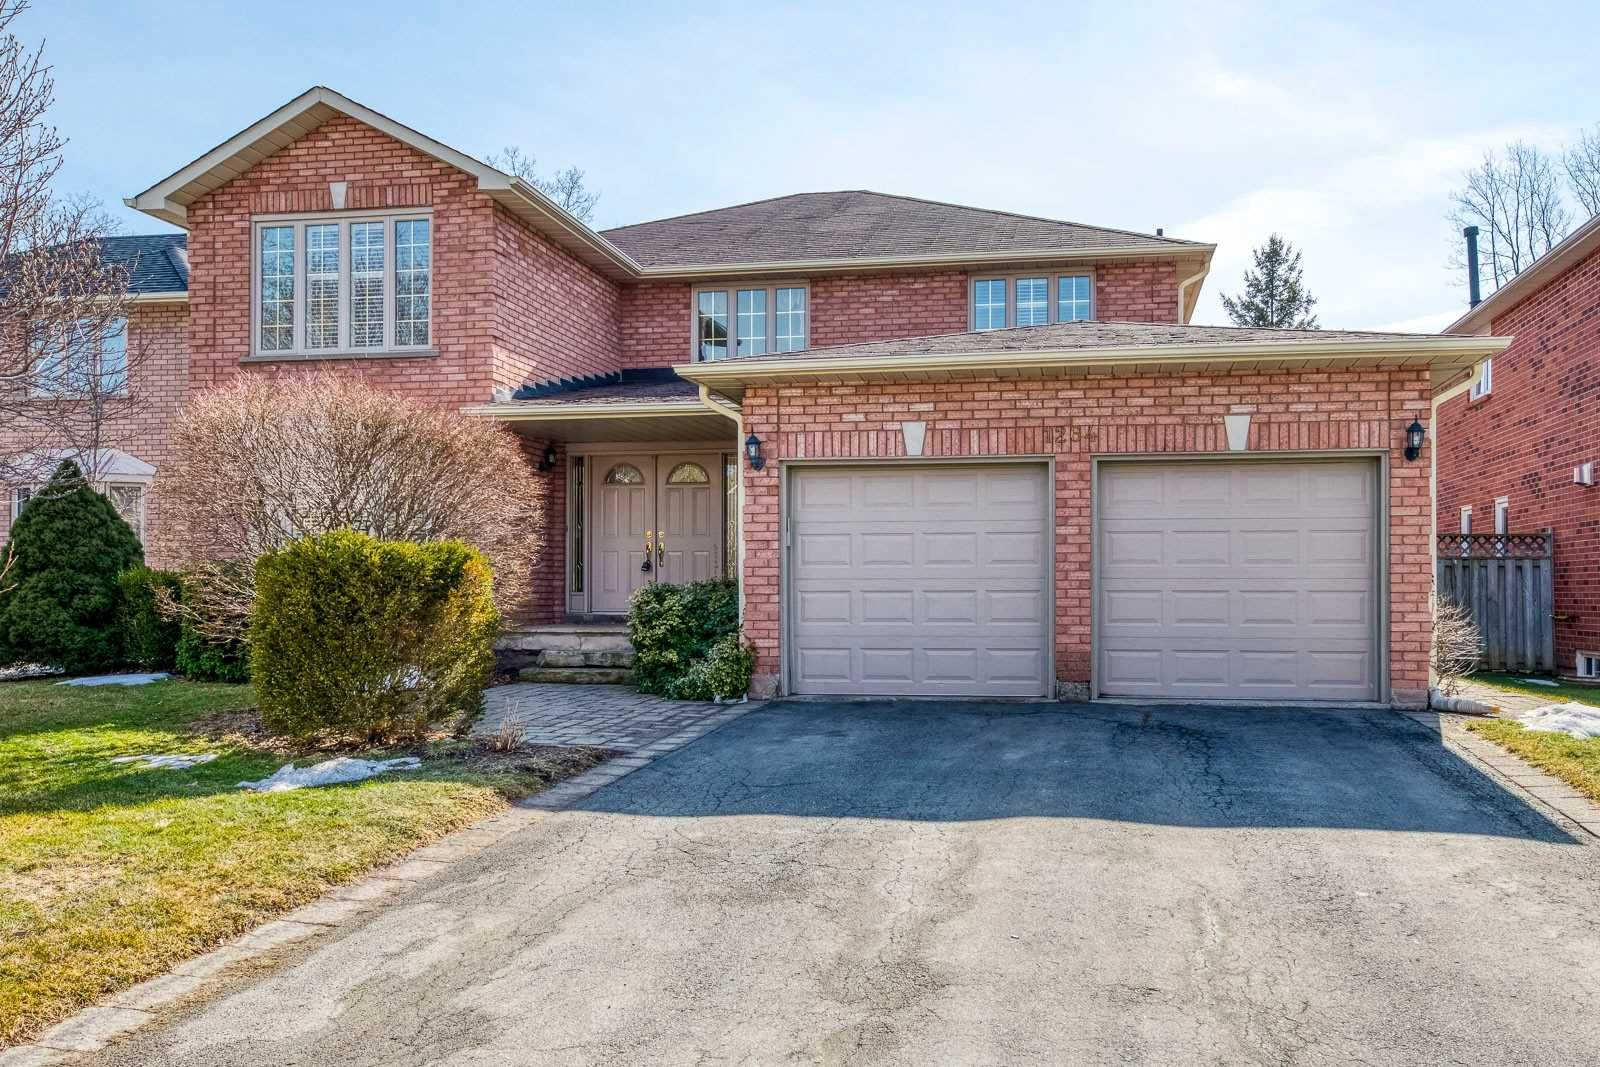 Main Photo: 1264 Springwood Crescent in Oakville: Glen Abbey House (2-Storey) for sale : MLS®# W5146442